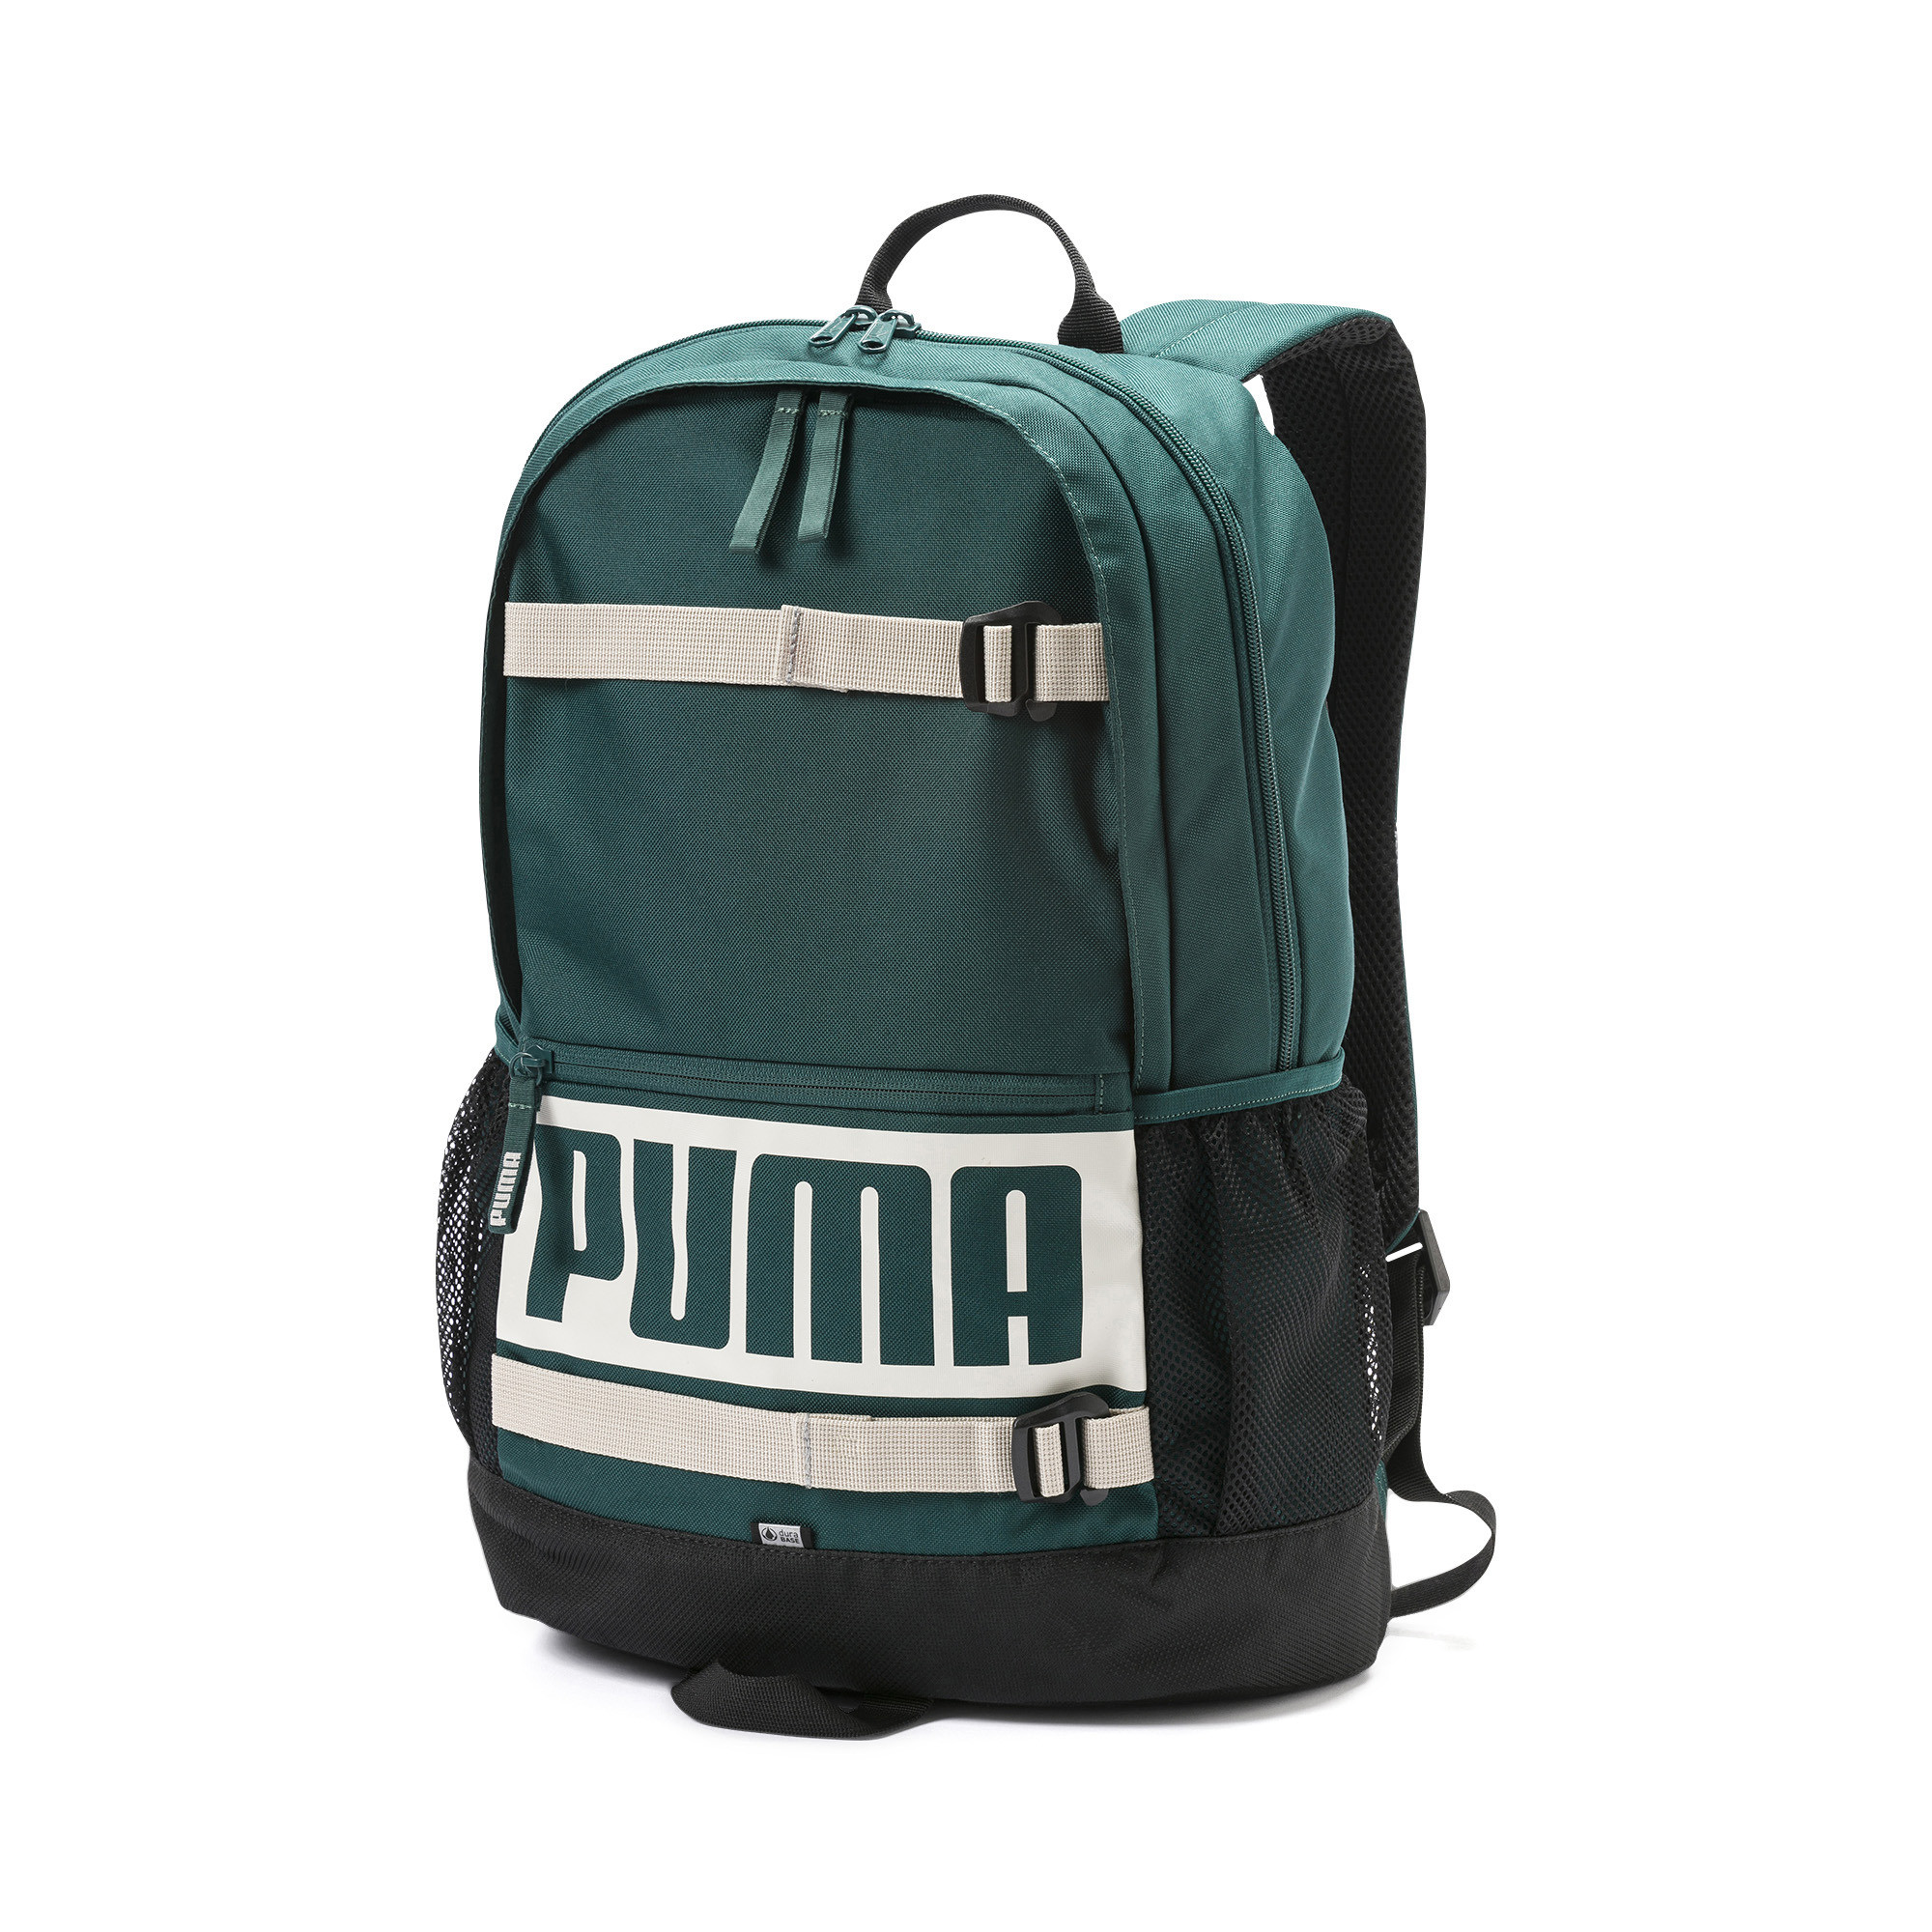 e691b46228273 Backpacks   Bags - Accessories - Mens